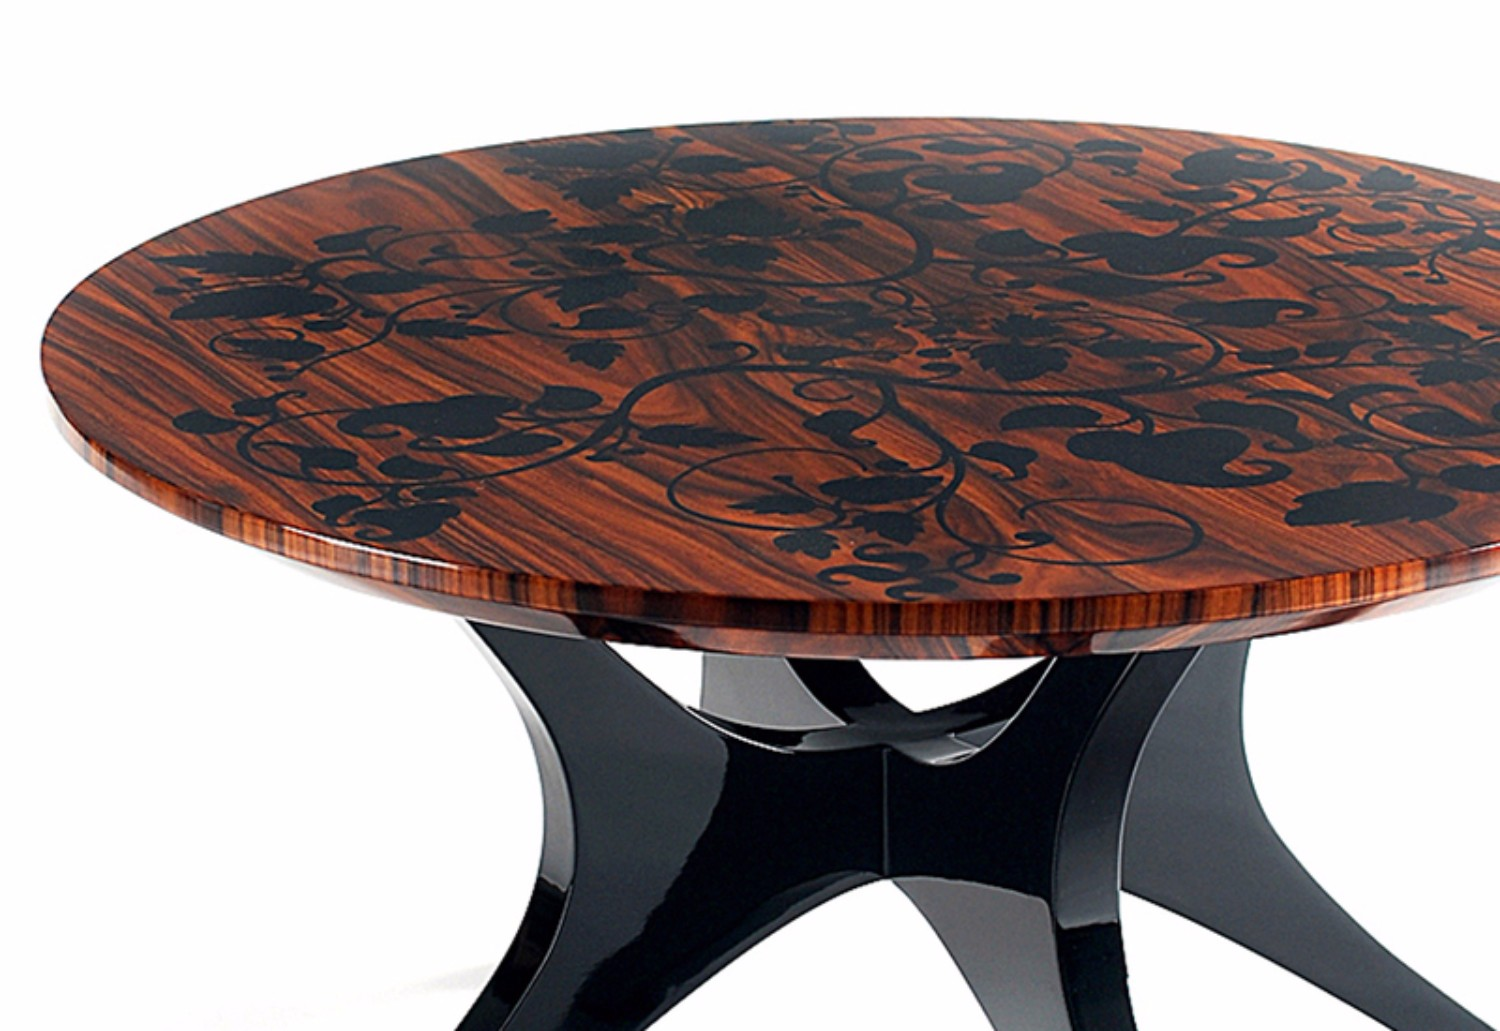 Coffee table Get Inspired by Exquisite Minimalist Coffee Tables pearl coffee table 1500 1